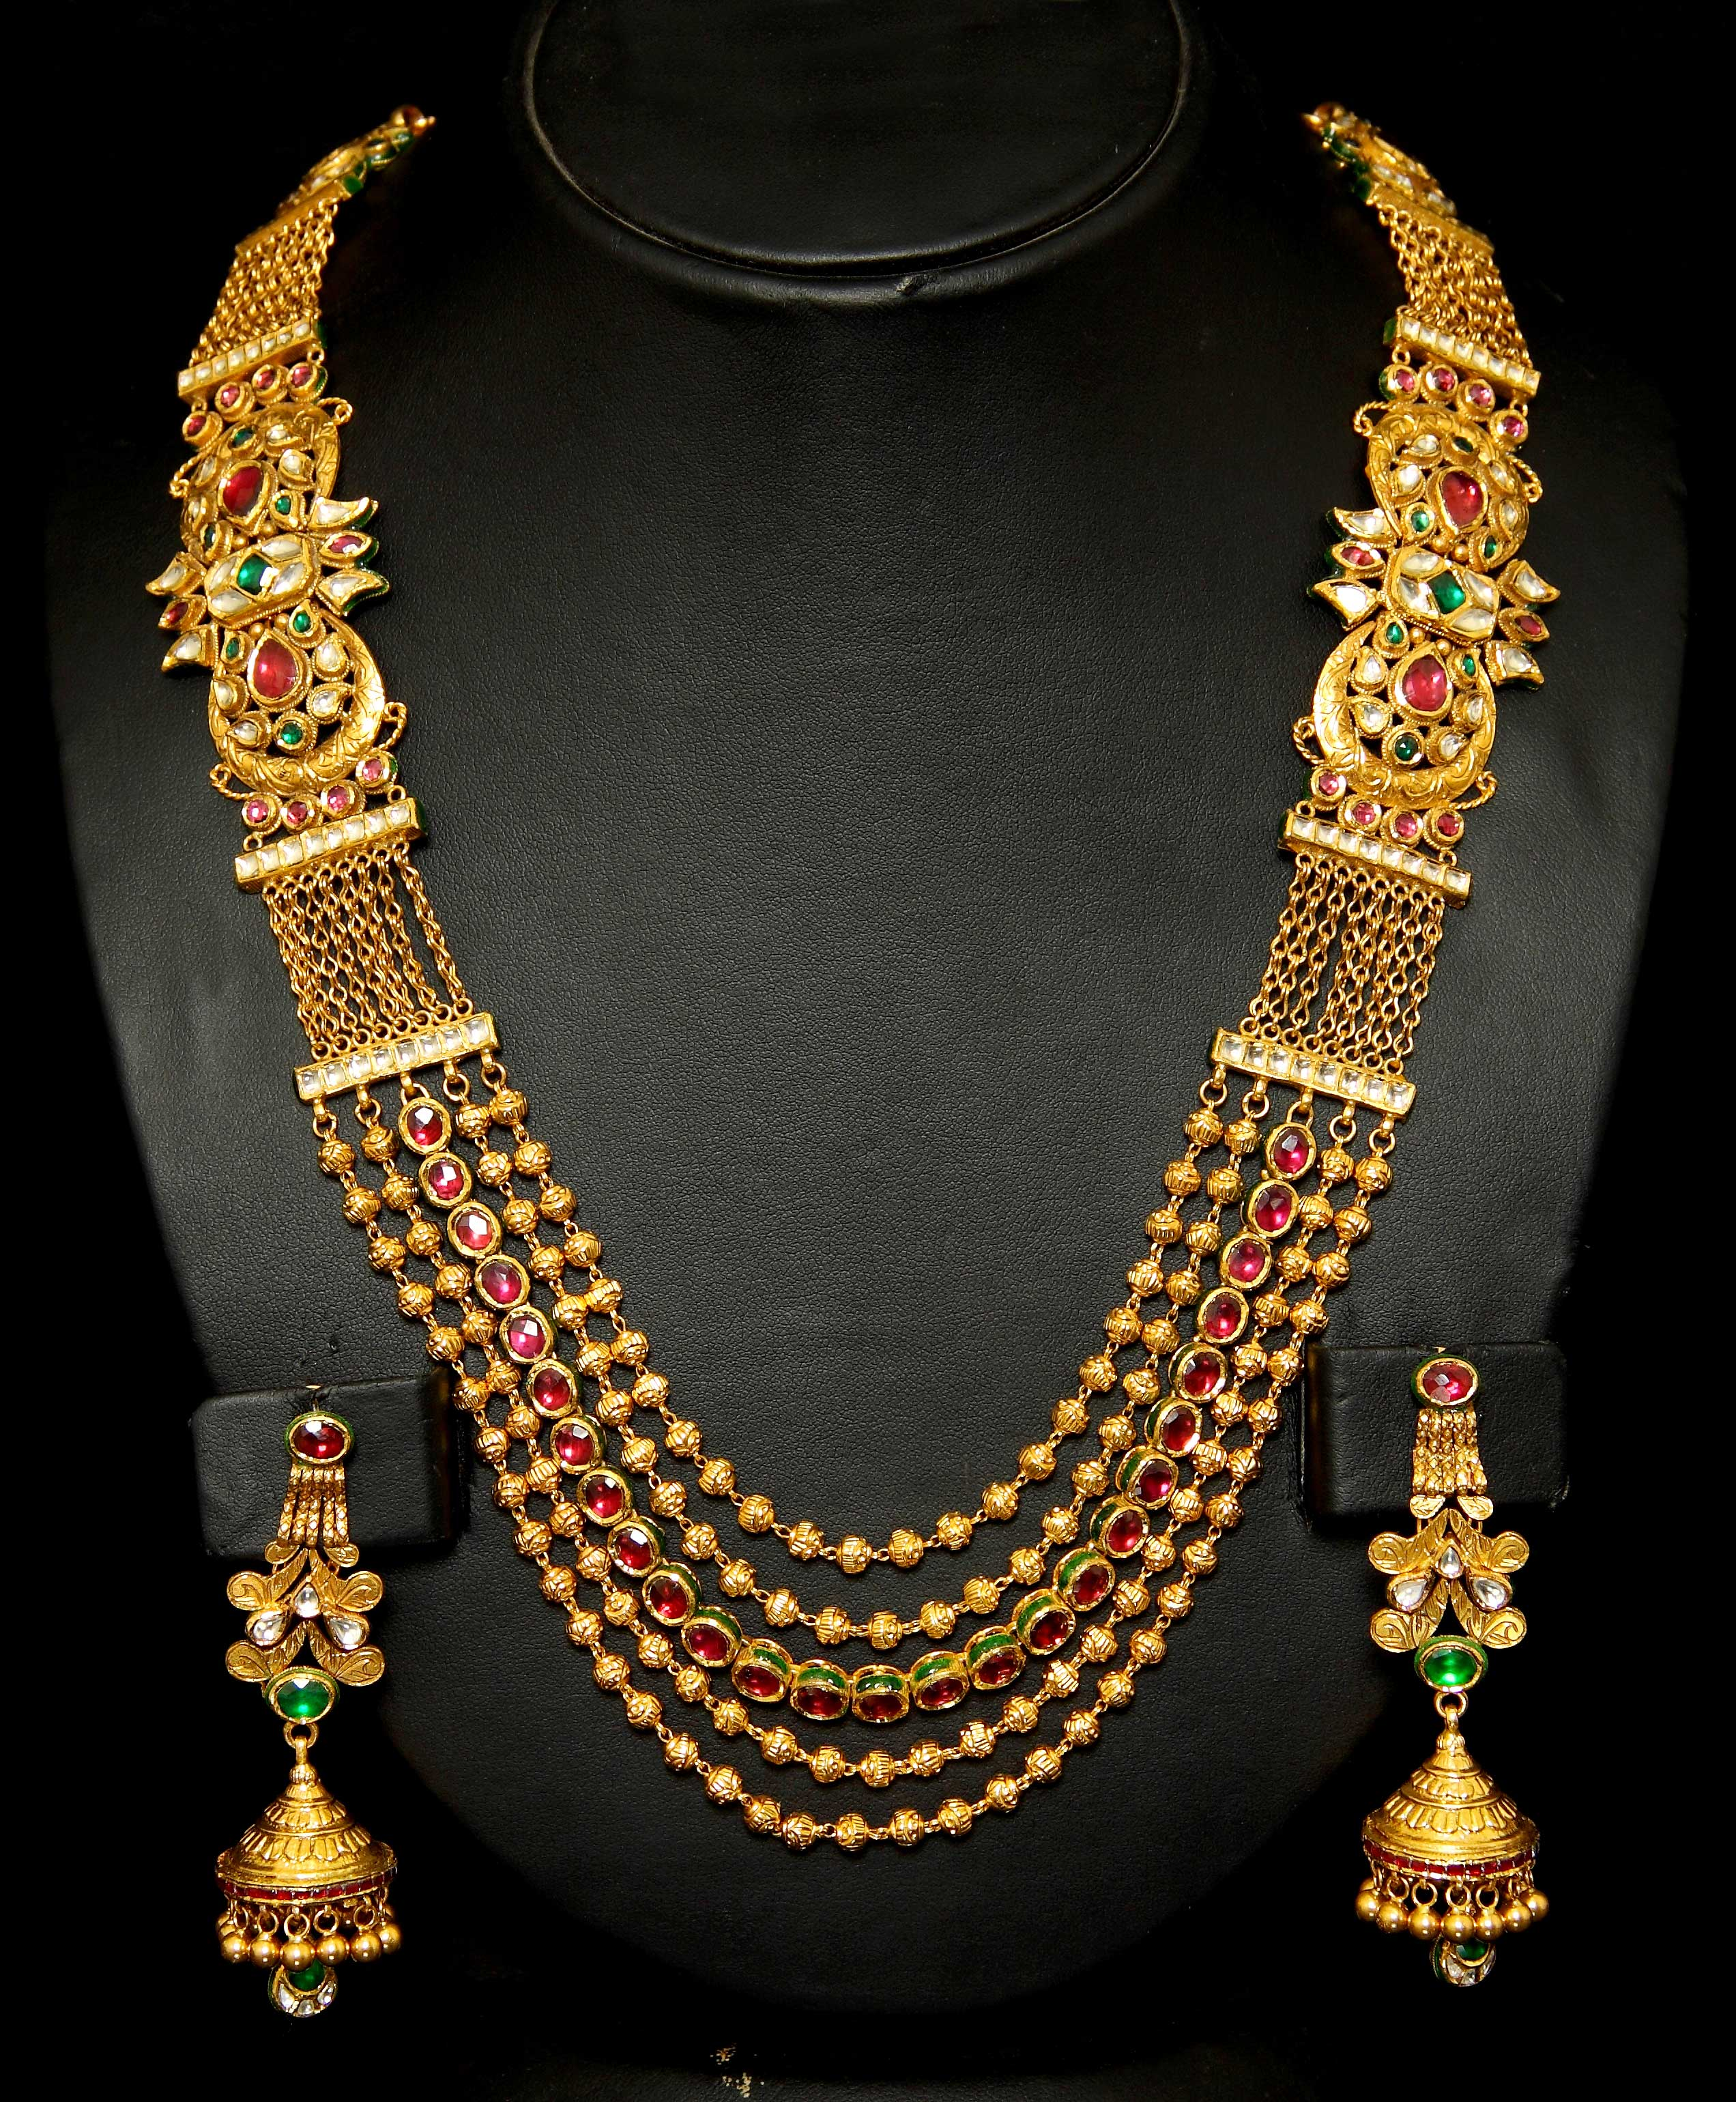 jewellery indian buy necklace collections lalithaa kumar antique kiran online